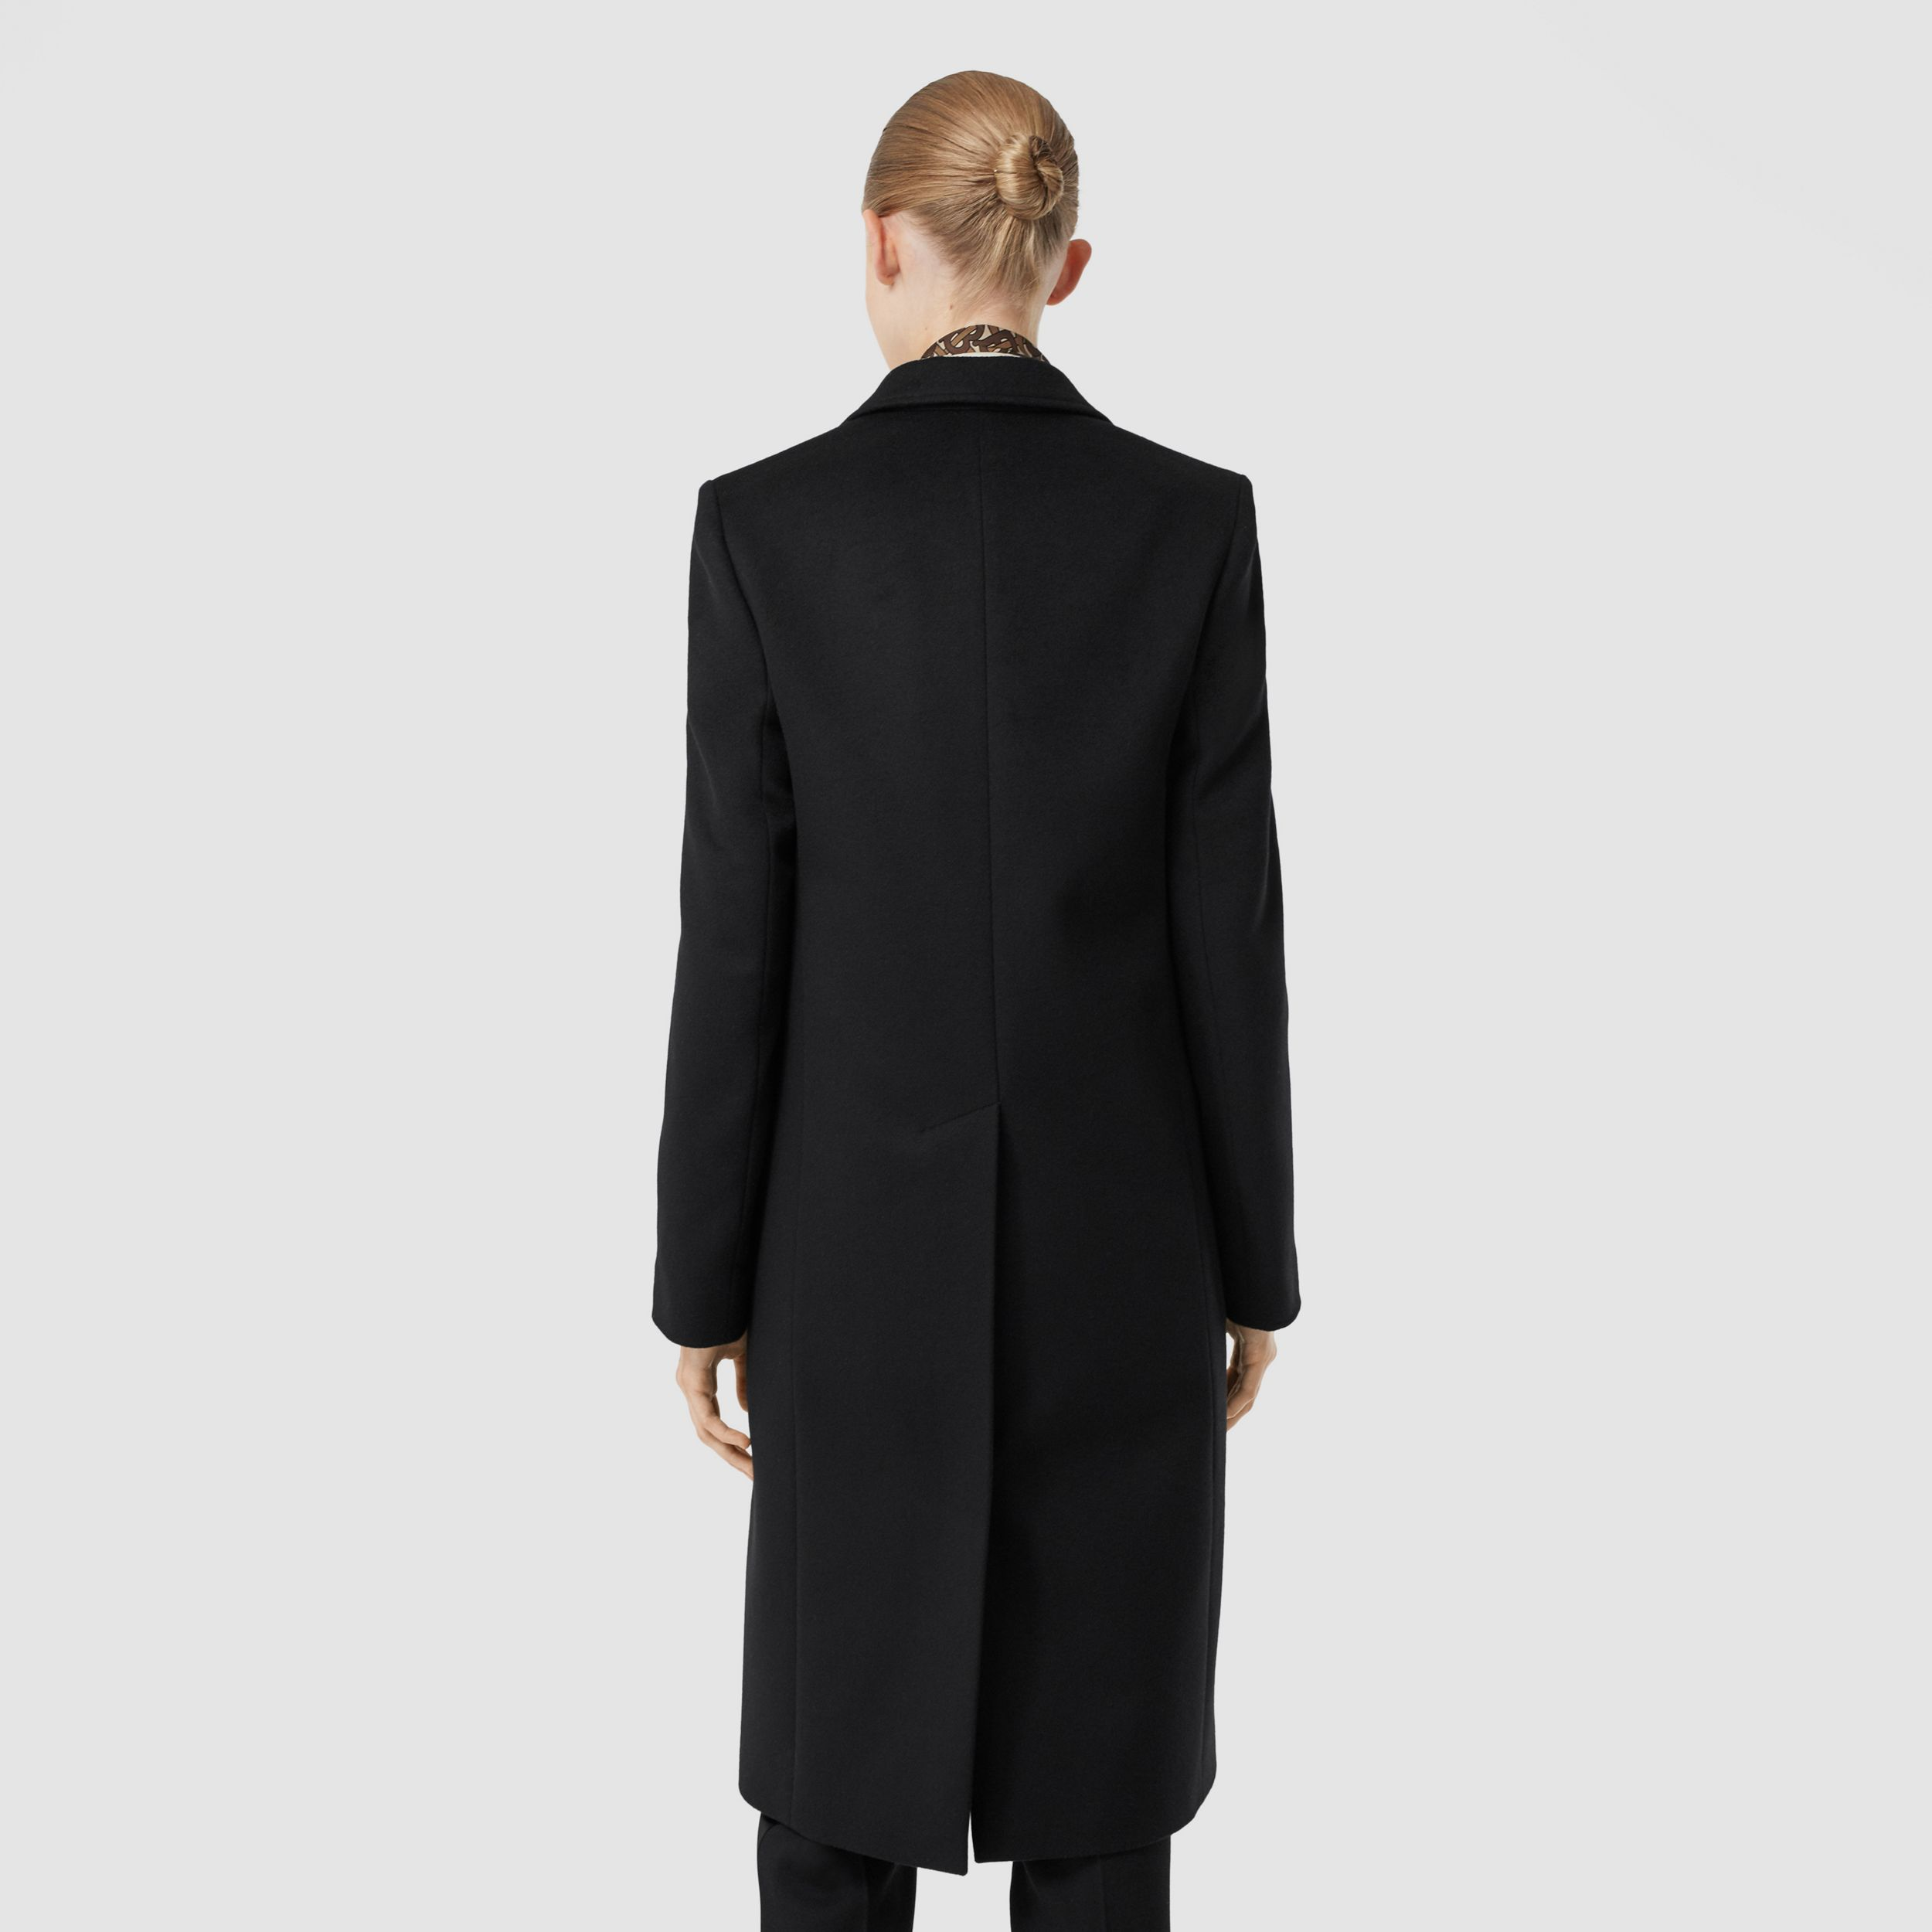 Wool Cashmere Tailored Coat in Black - Women | Burberry - 3